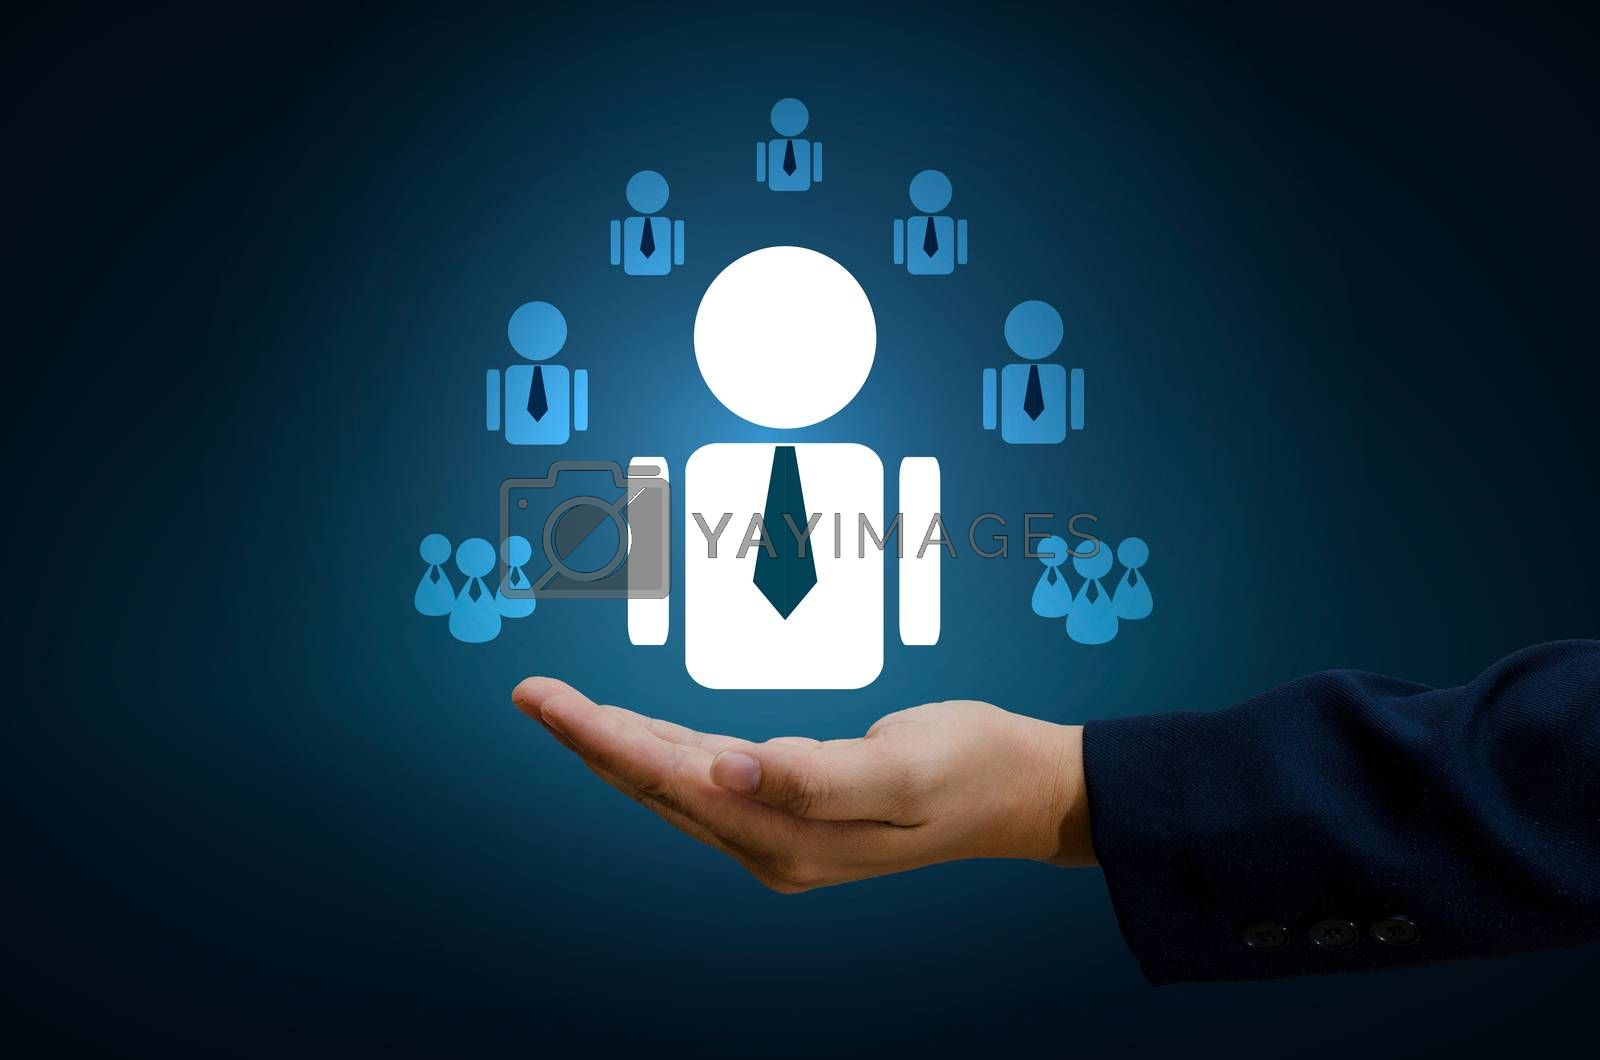 hand businessman human resource management and recruitment business  human resources CRM officer looking for employee represented by icon Gender discrimination in employees selection. blue background. by Sarayut